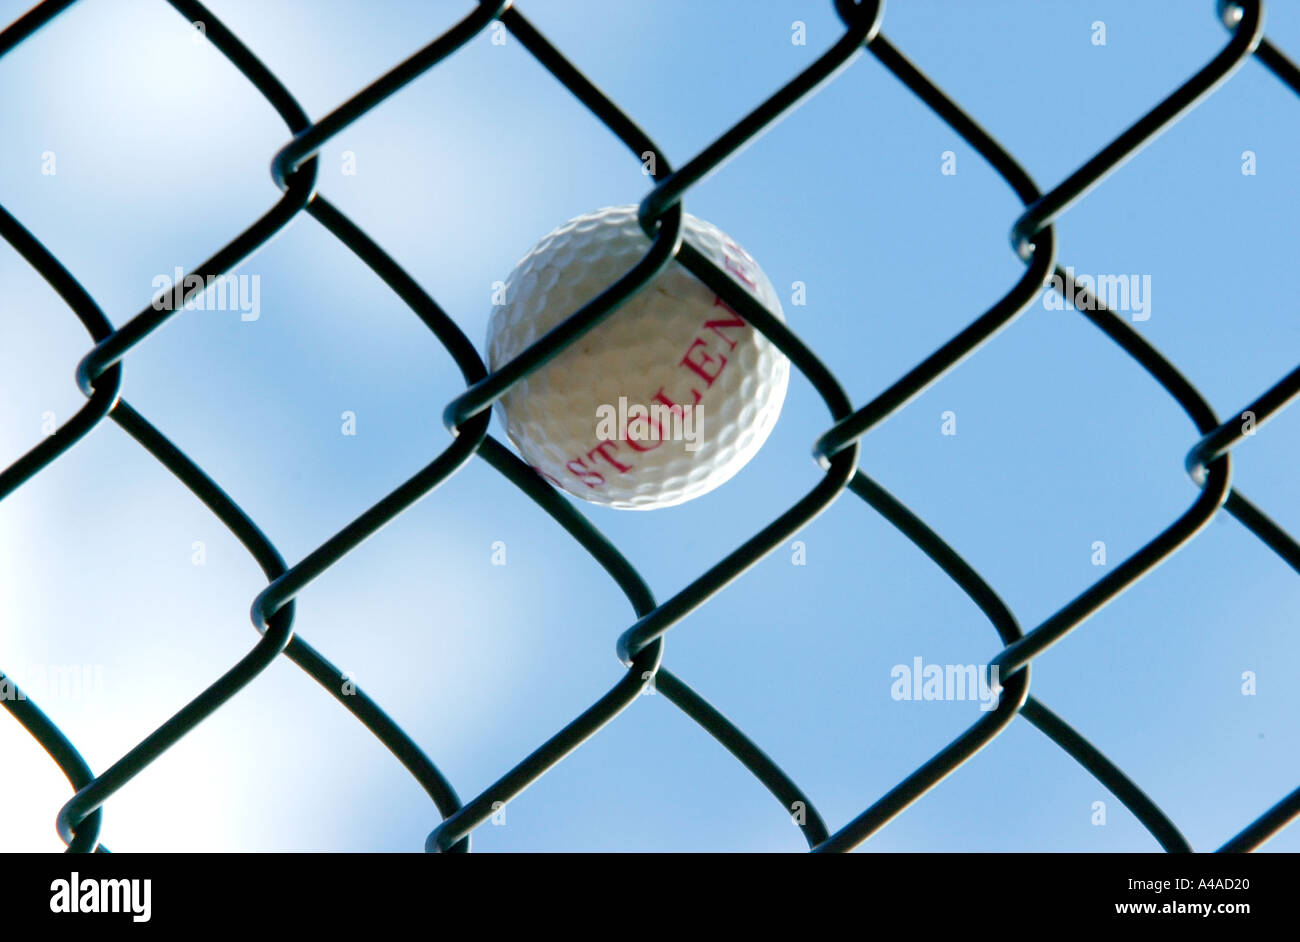 Stolen Golf Ball in a wire cage Stock Photo: 306464 - Alamy